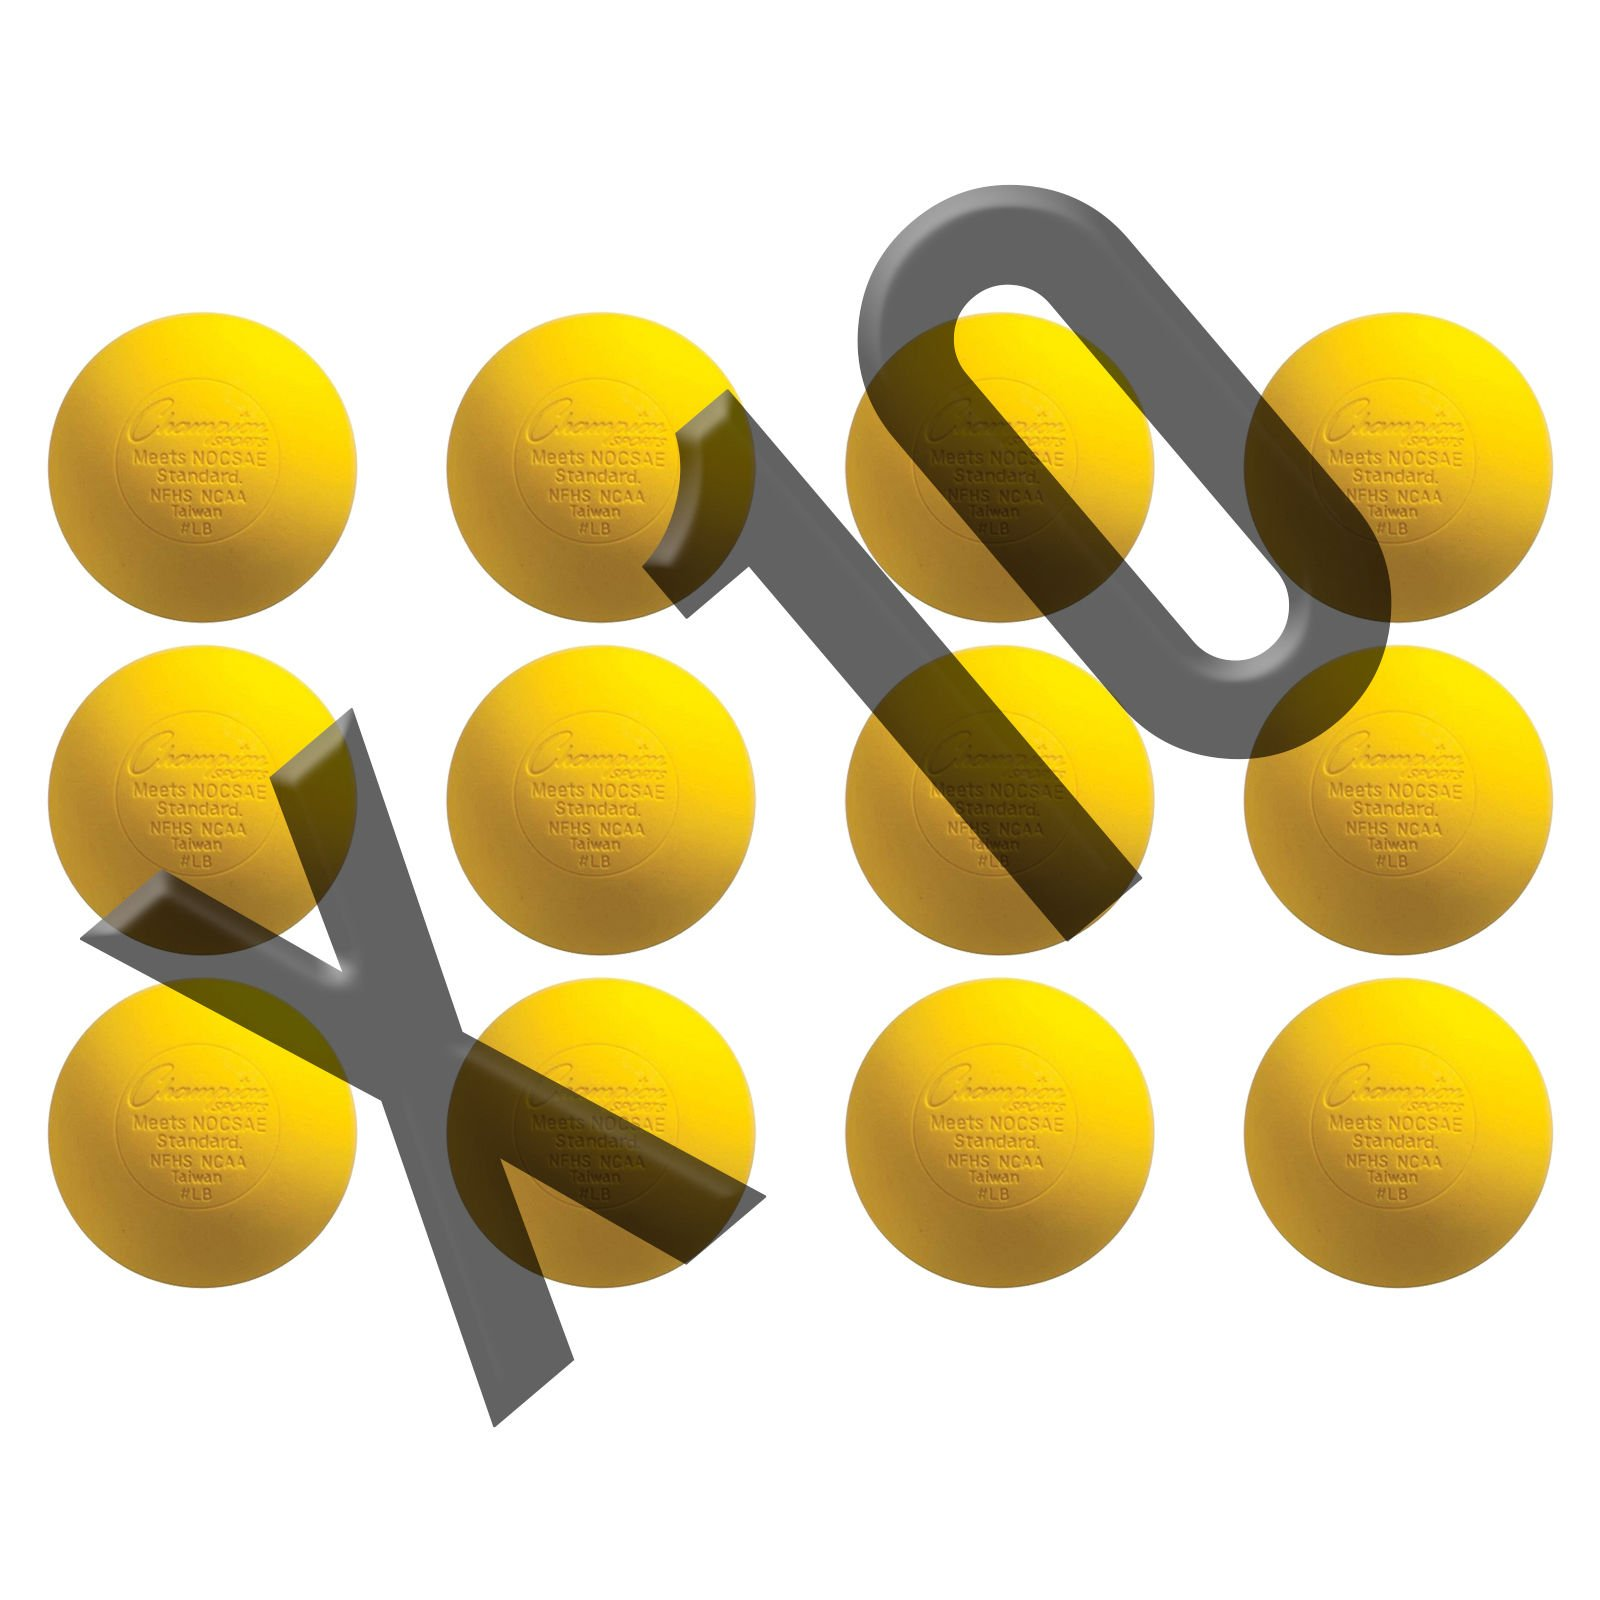 Champion Sports Official Lacrosse Balls - 120 Count, Yellow by Champion Sports